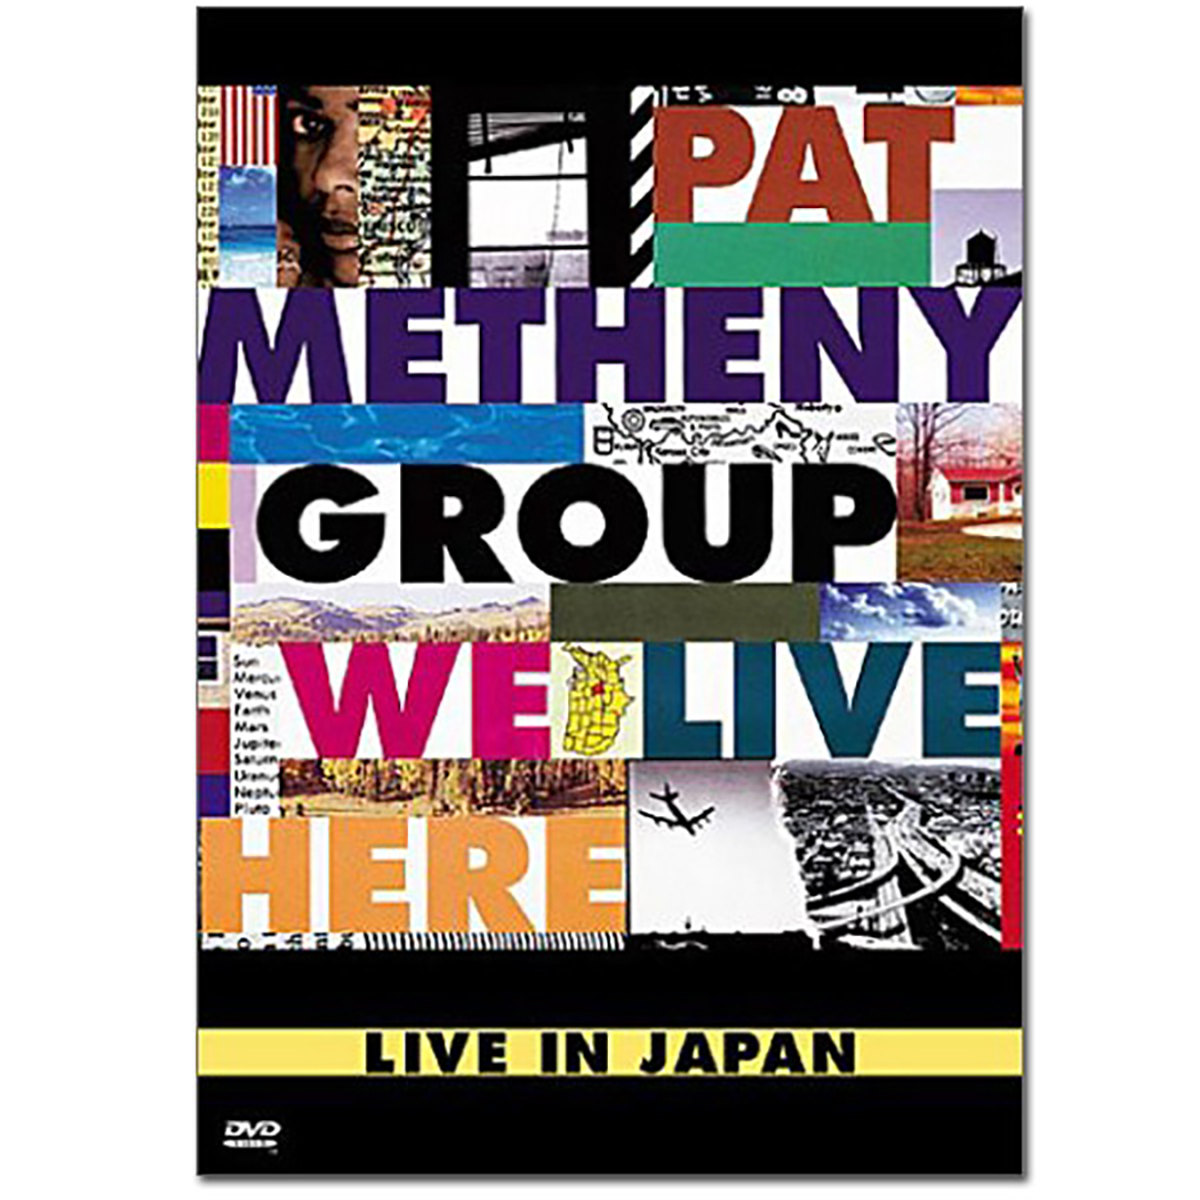 Pat Metheny - We Live Here DVD